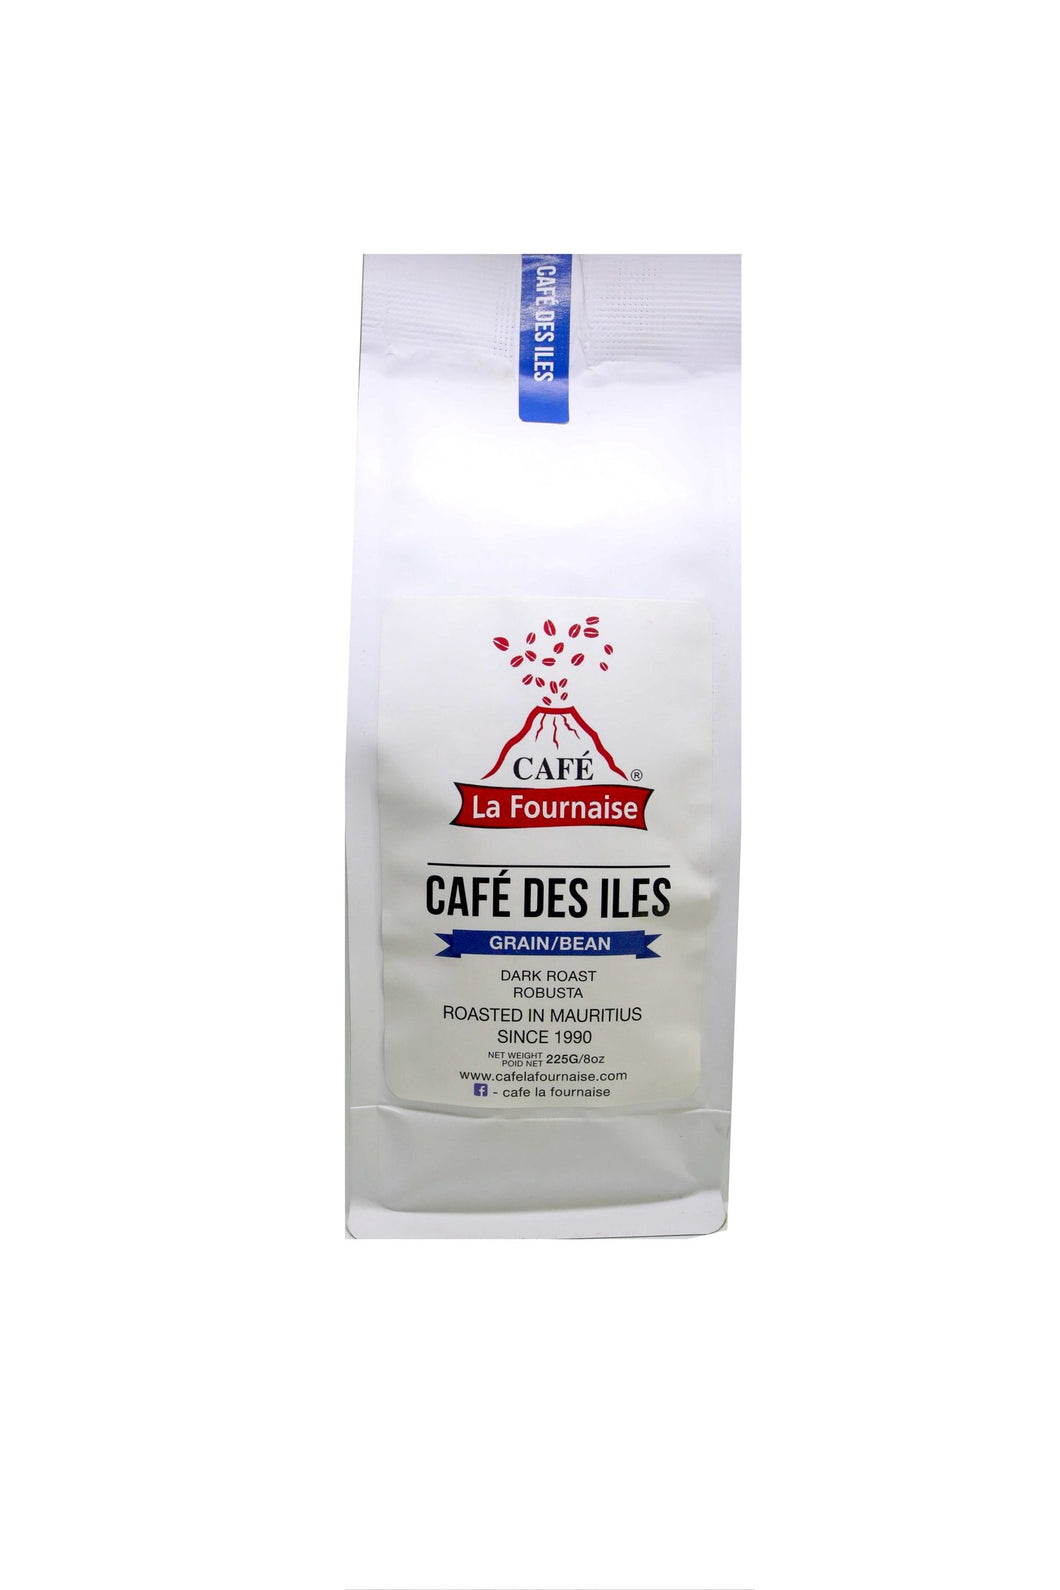 Coffee roasted in Mauritius. Ground Coffee. Café des iles. Café, Torrefecation, local, made in mauritius, cafe la fournaise, beans, coffee beans